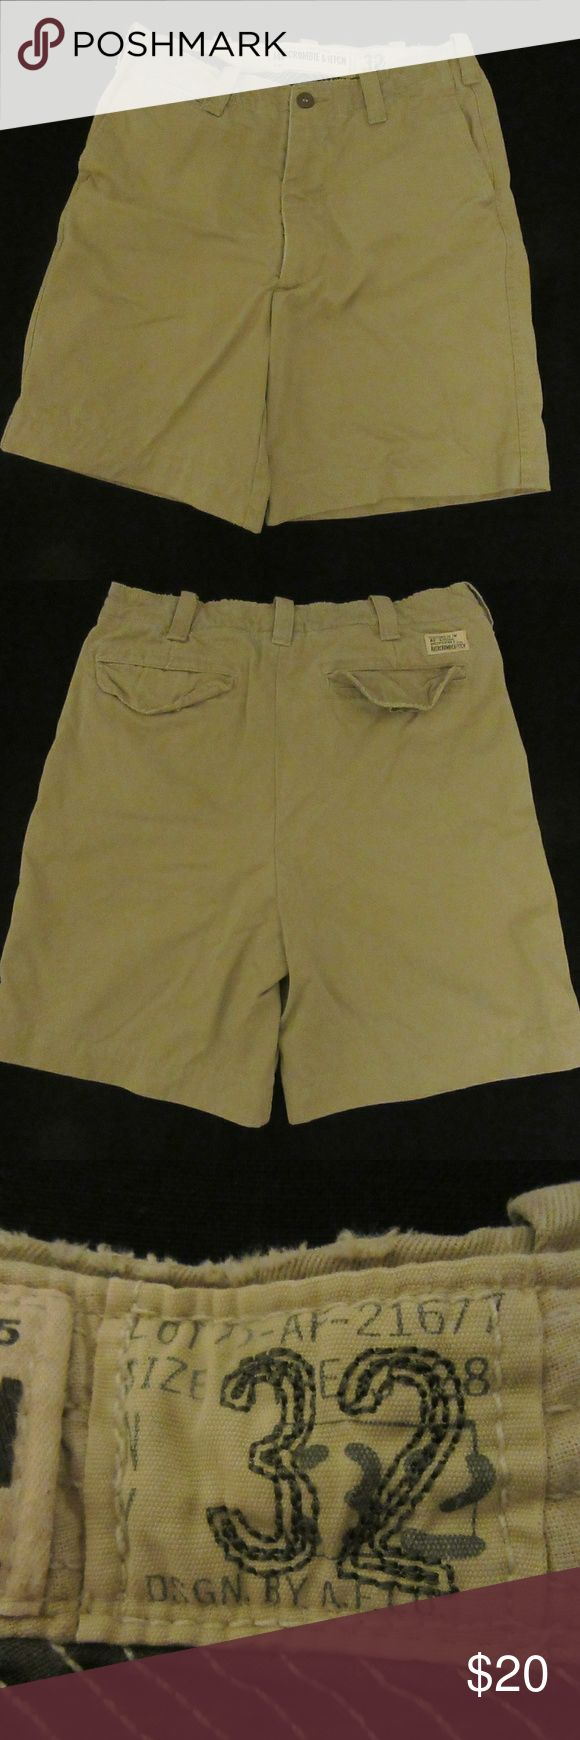 ABERCROMBIE & FITCH SHORTS CHINO MEN'S 32 great shape  ABERCROMBIE & FITCH SHORTS CHINO MEN'S 32?  ? Abercrombie & Fitch Shorts